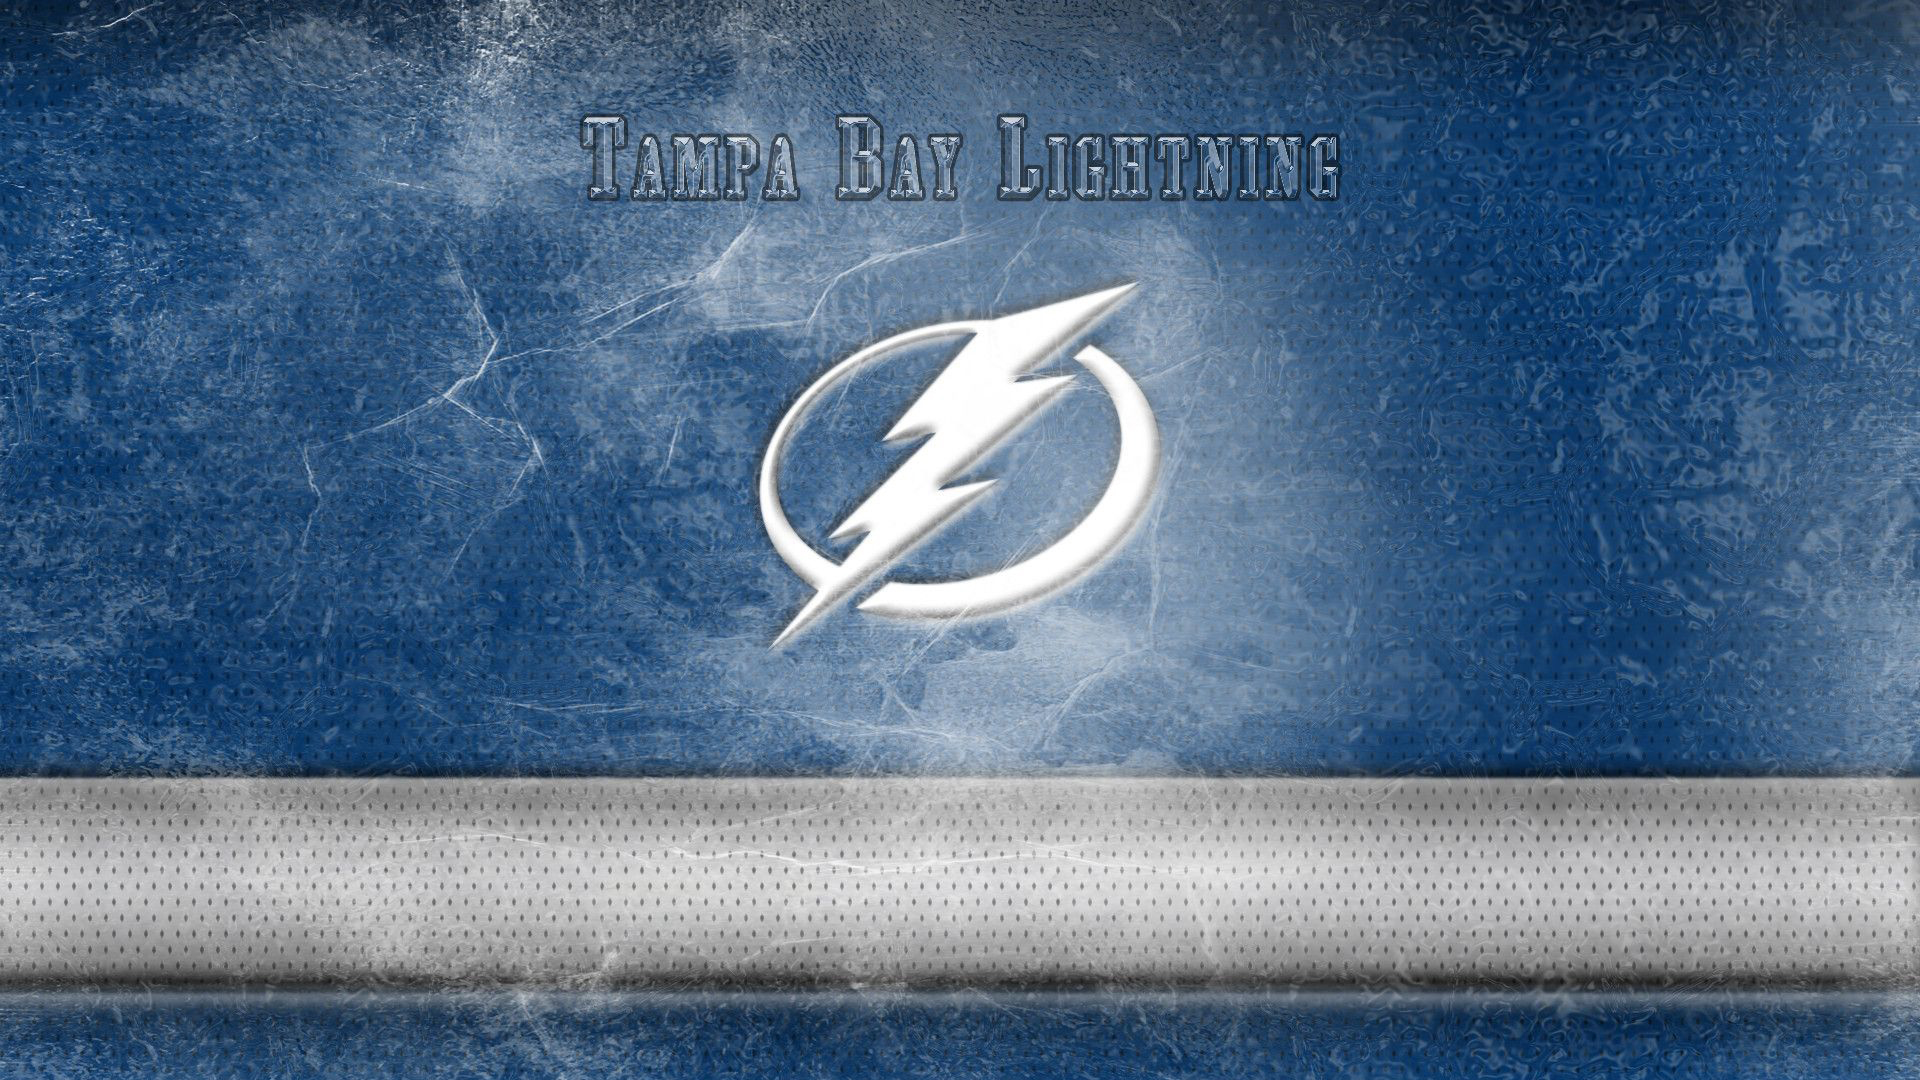 Download Tampa Bay Lightning Logo With Blue And White Backgorund Hd Tampa Bay Lightning